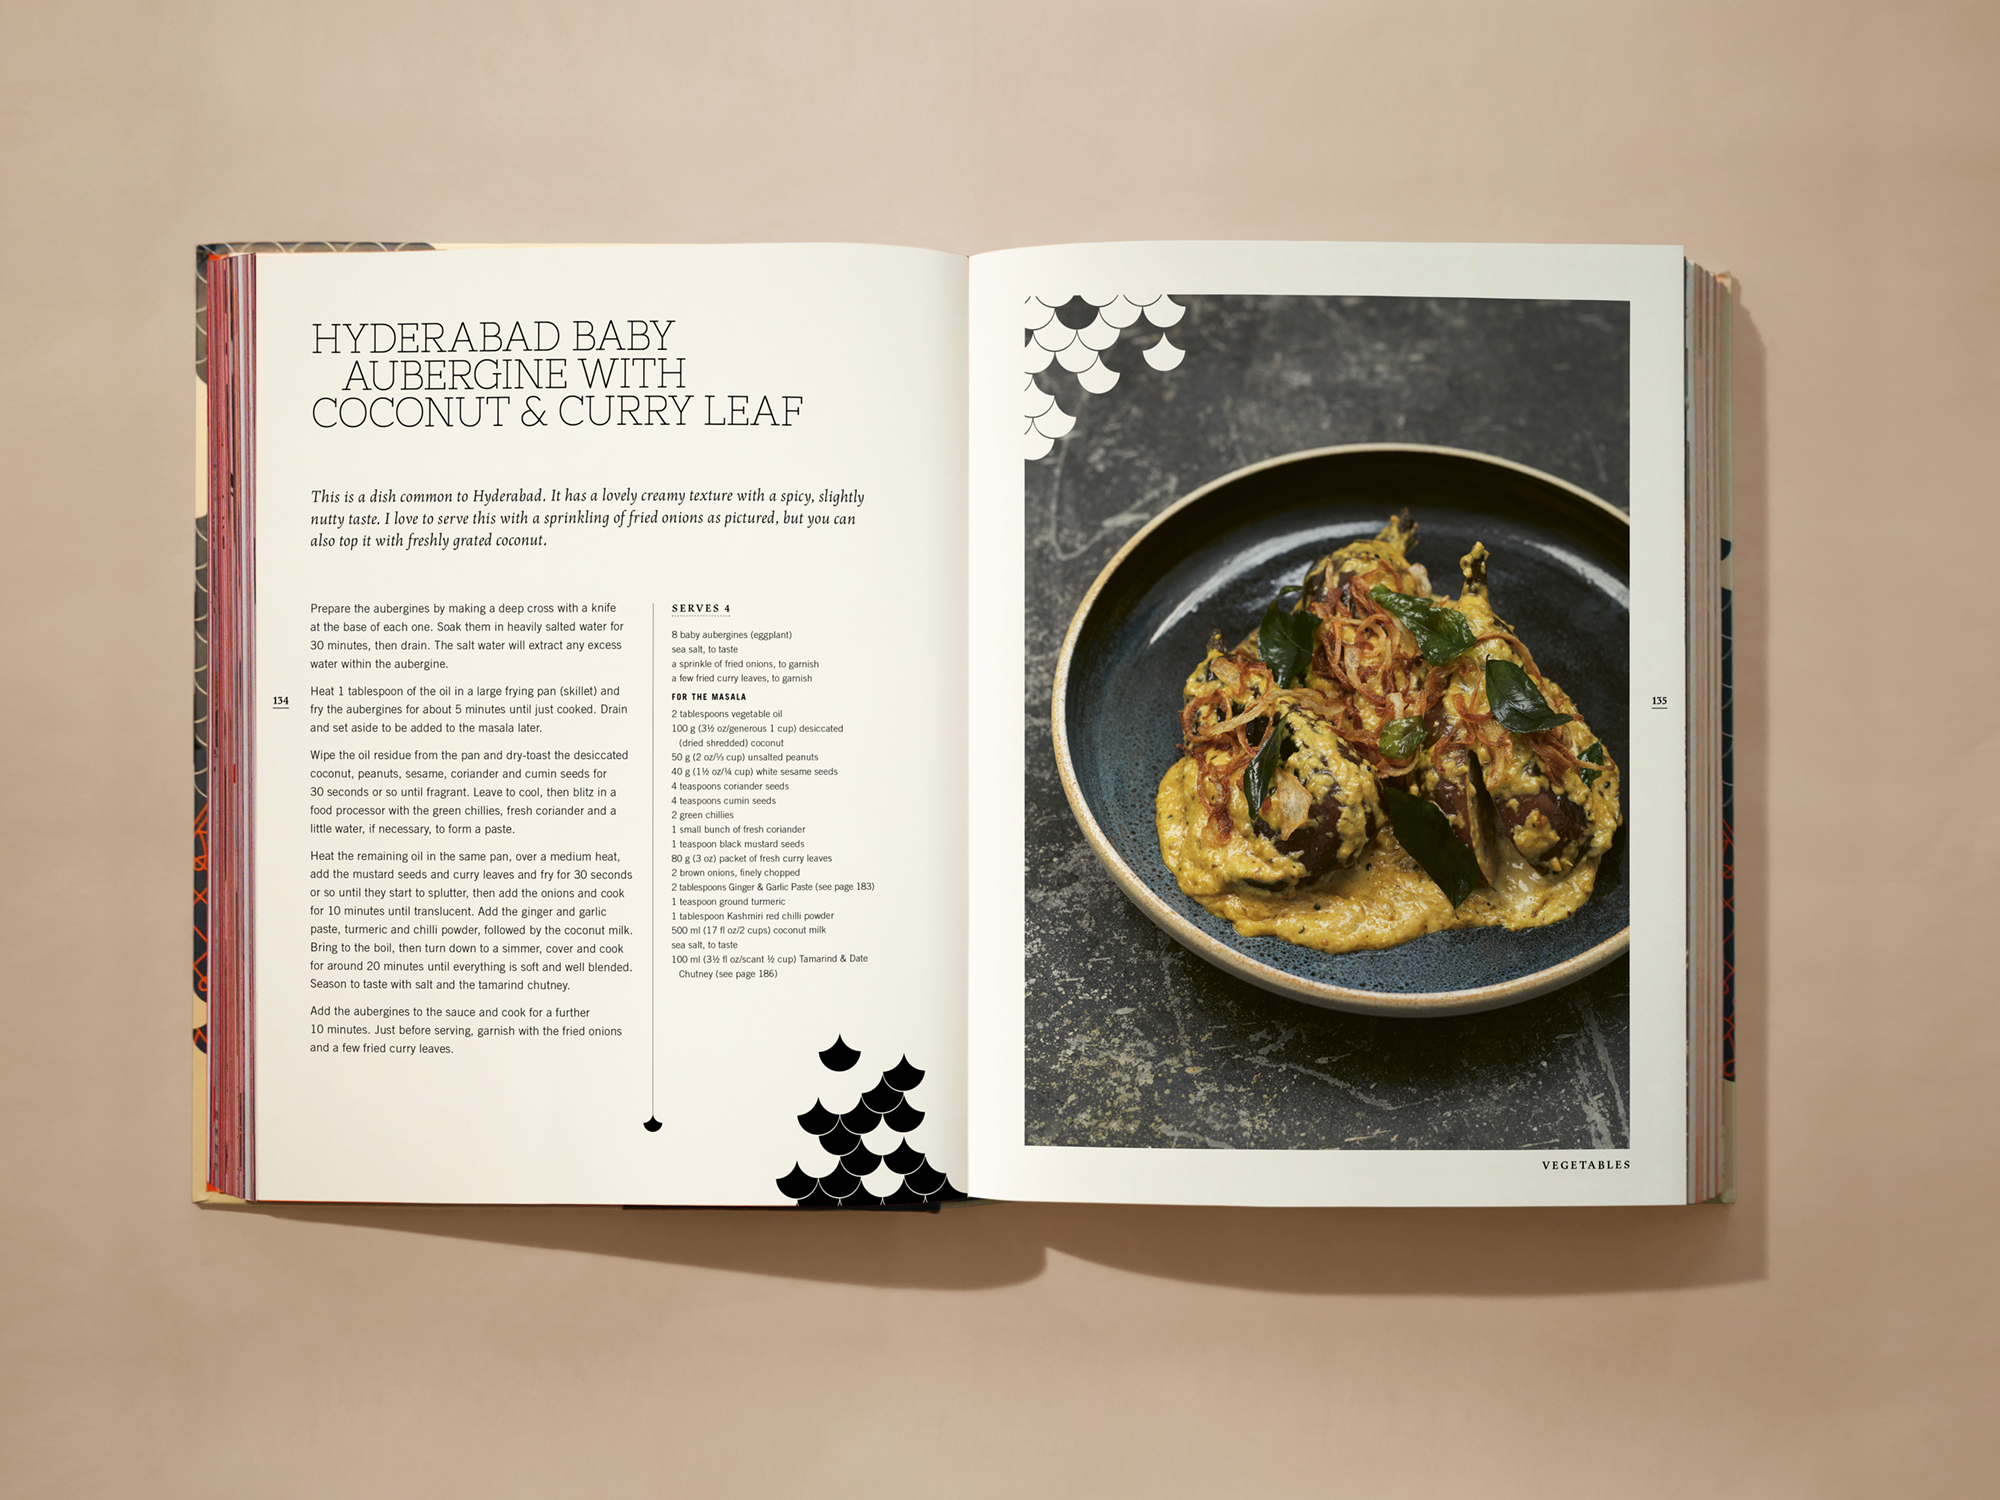 kricket cookbook london soho cool cover design layout recipe 4 run